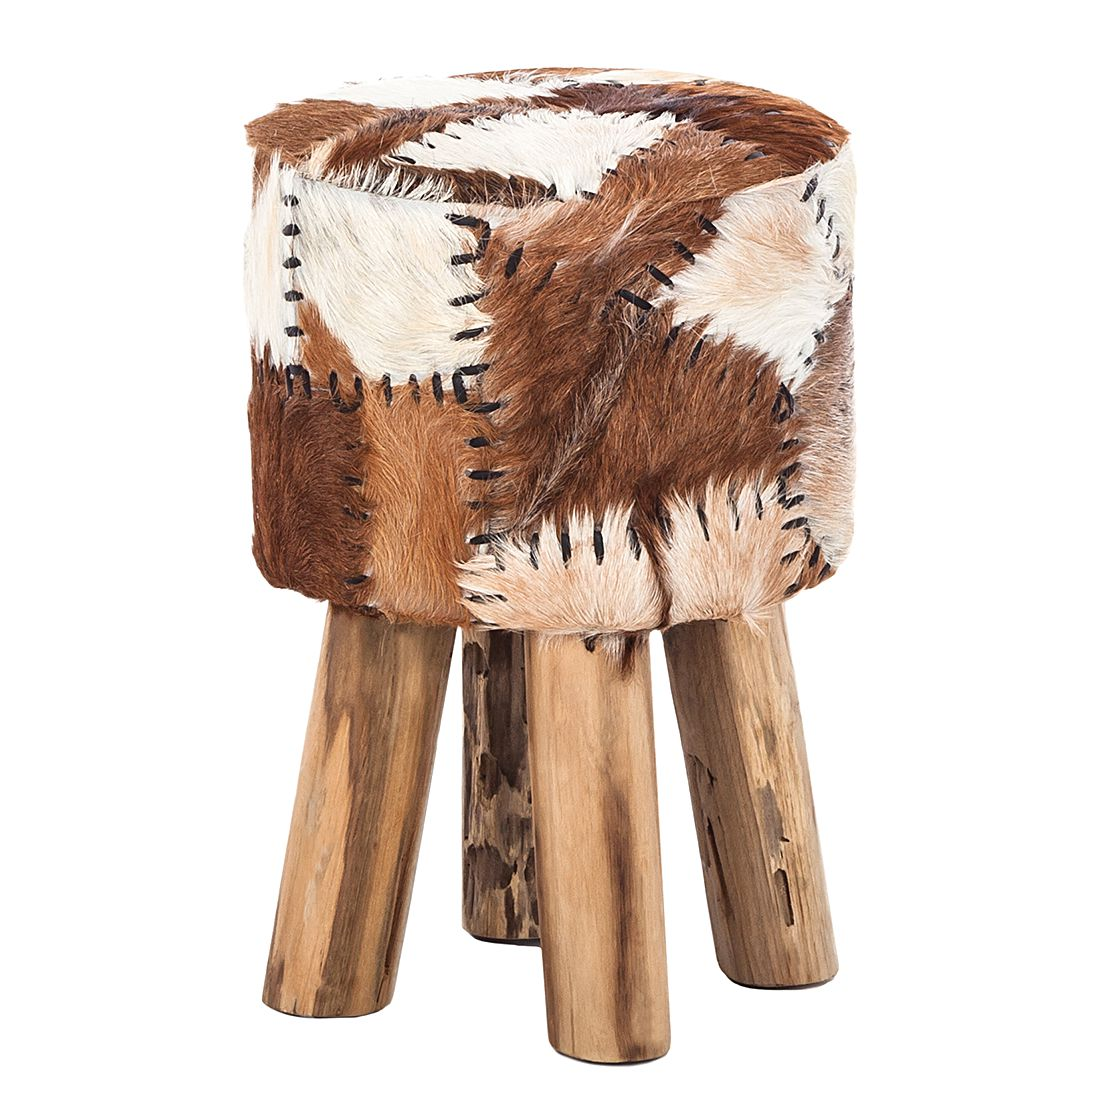 Home 24 - Tabouret ranch ziege, ars manufacti